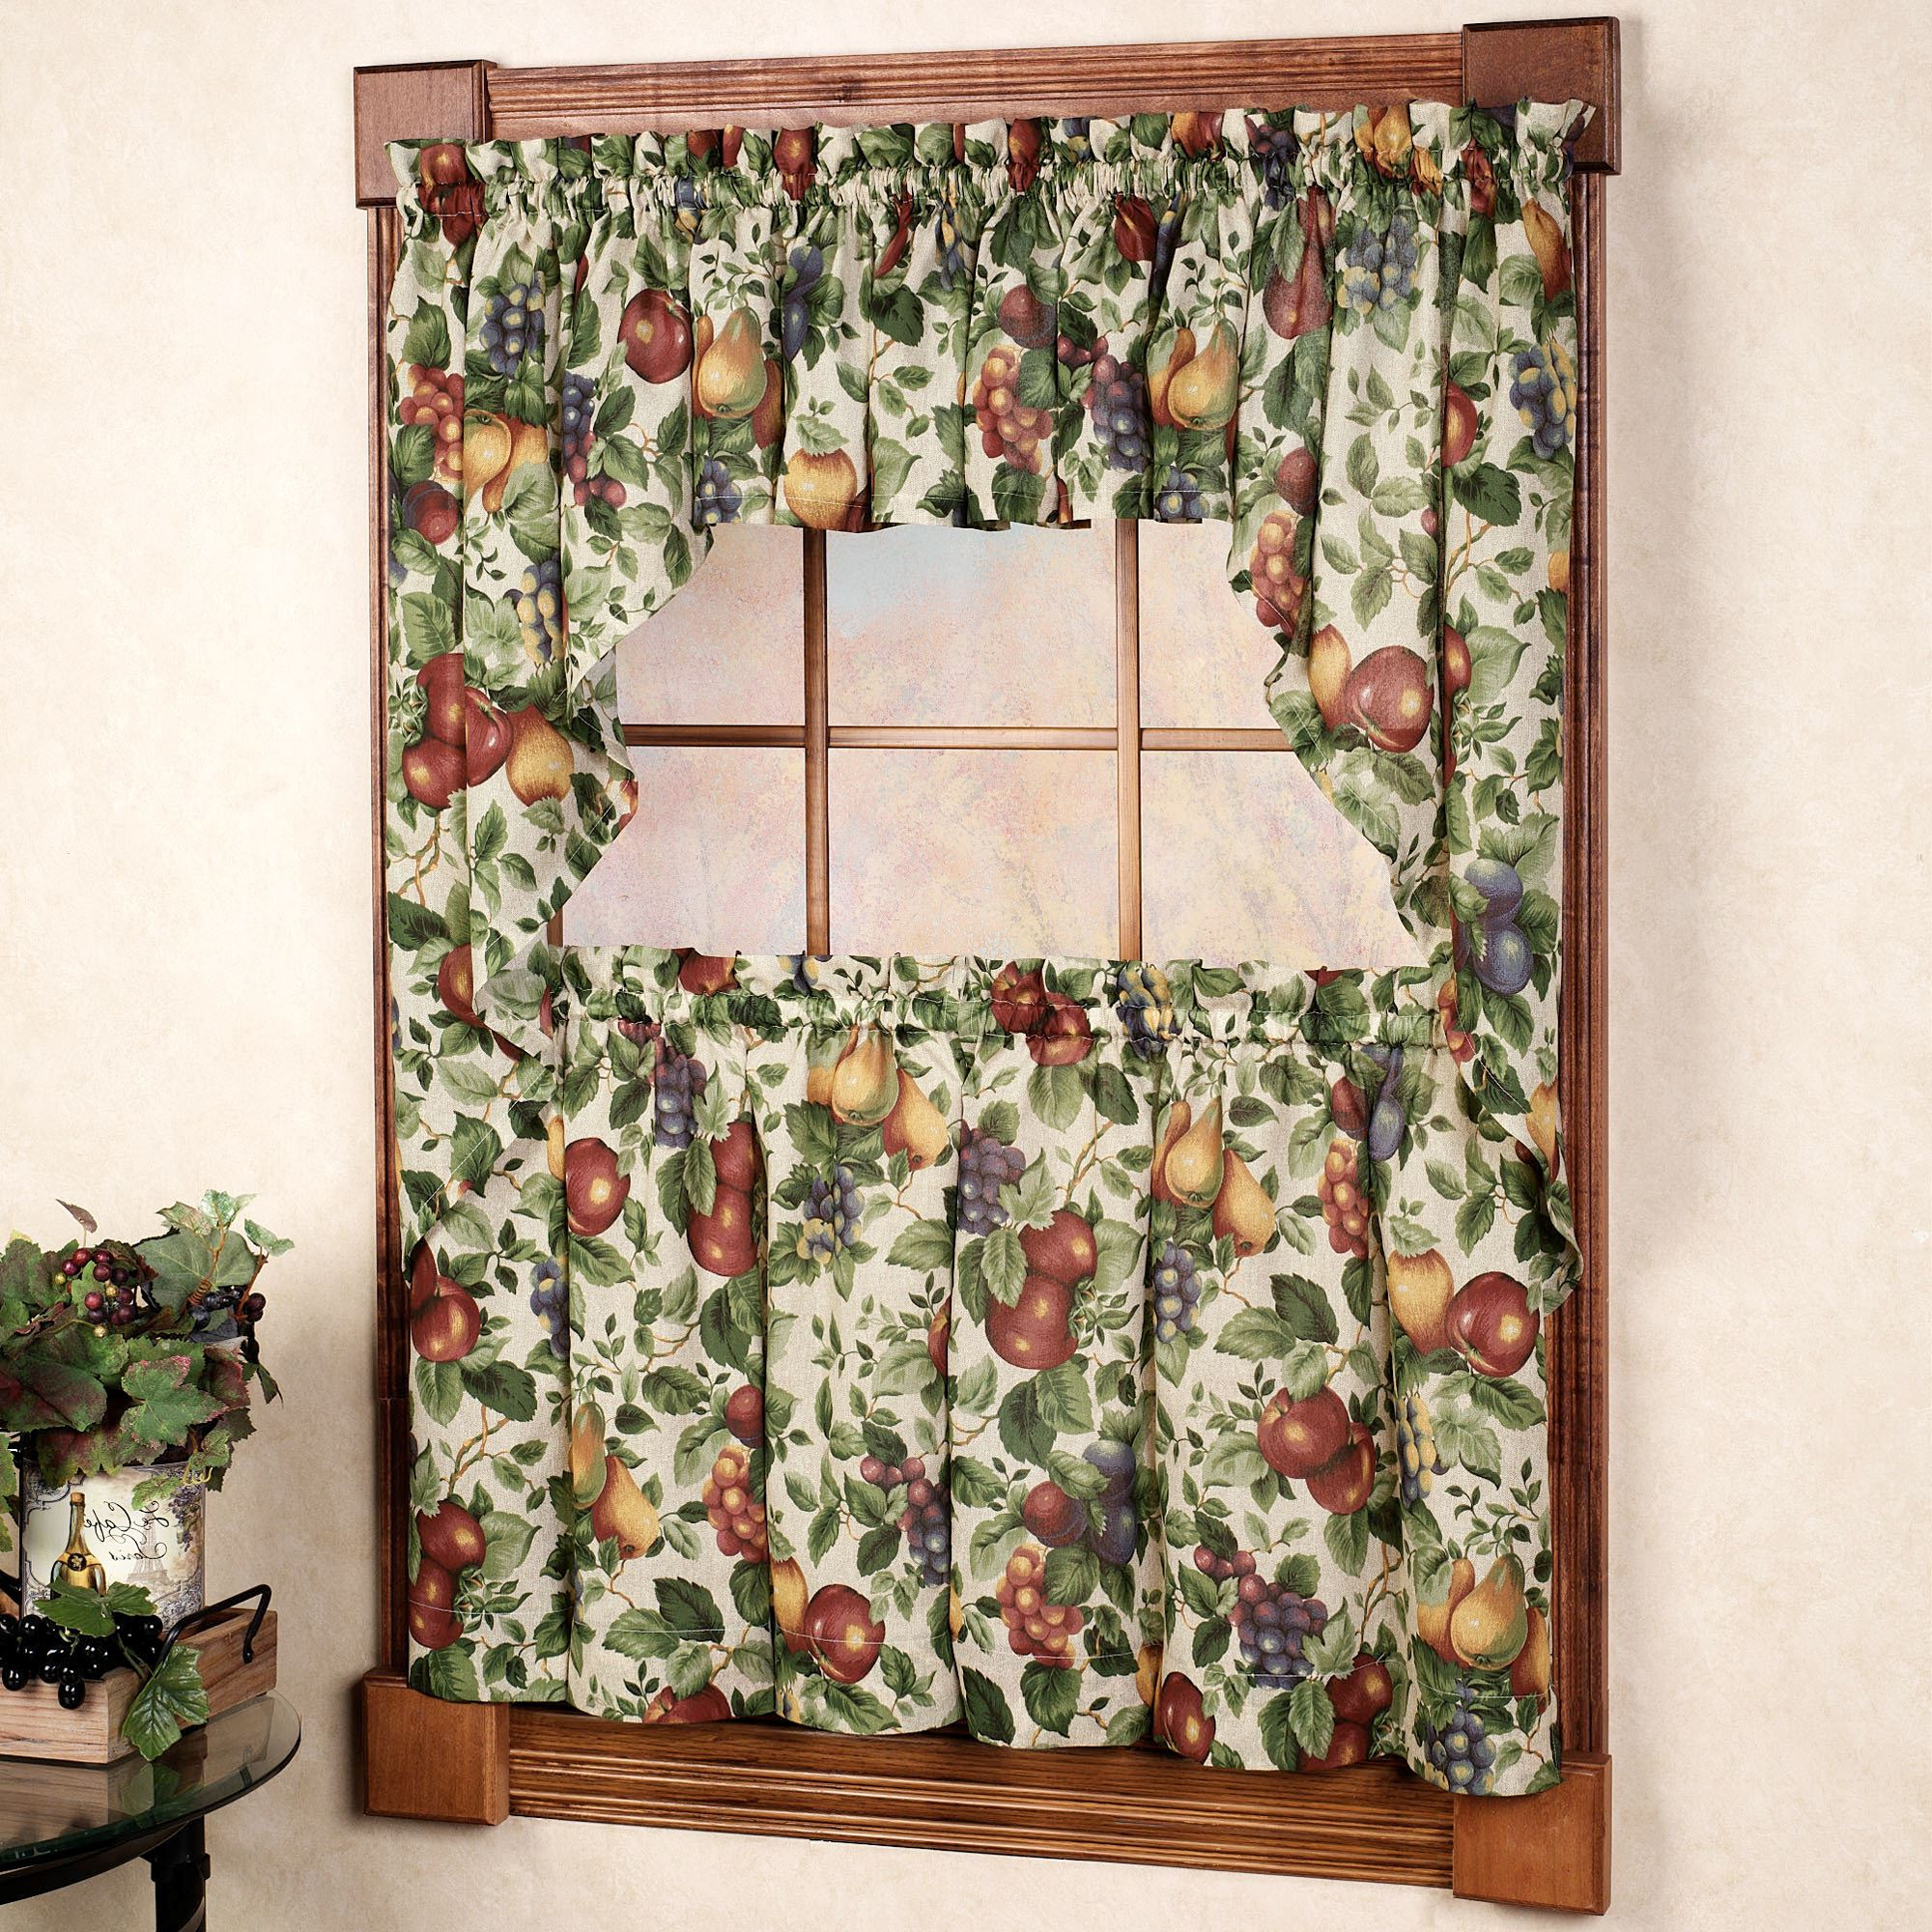 Sonoma Fruit Tier Window Treatments Regarding Widely Used Apple Orchard Printed Kitchen Tier Sets (View 5 of 20)